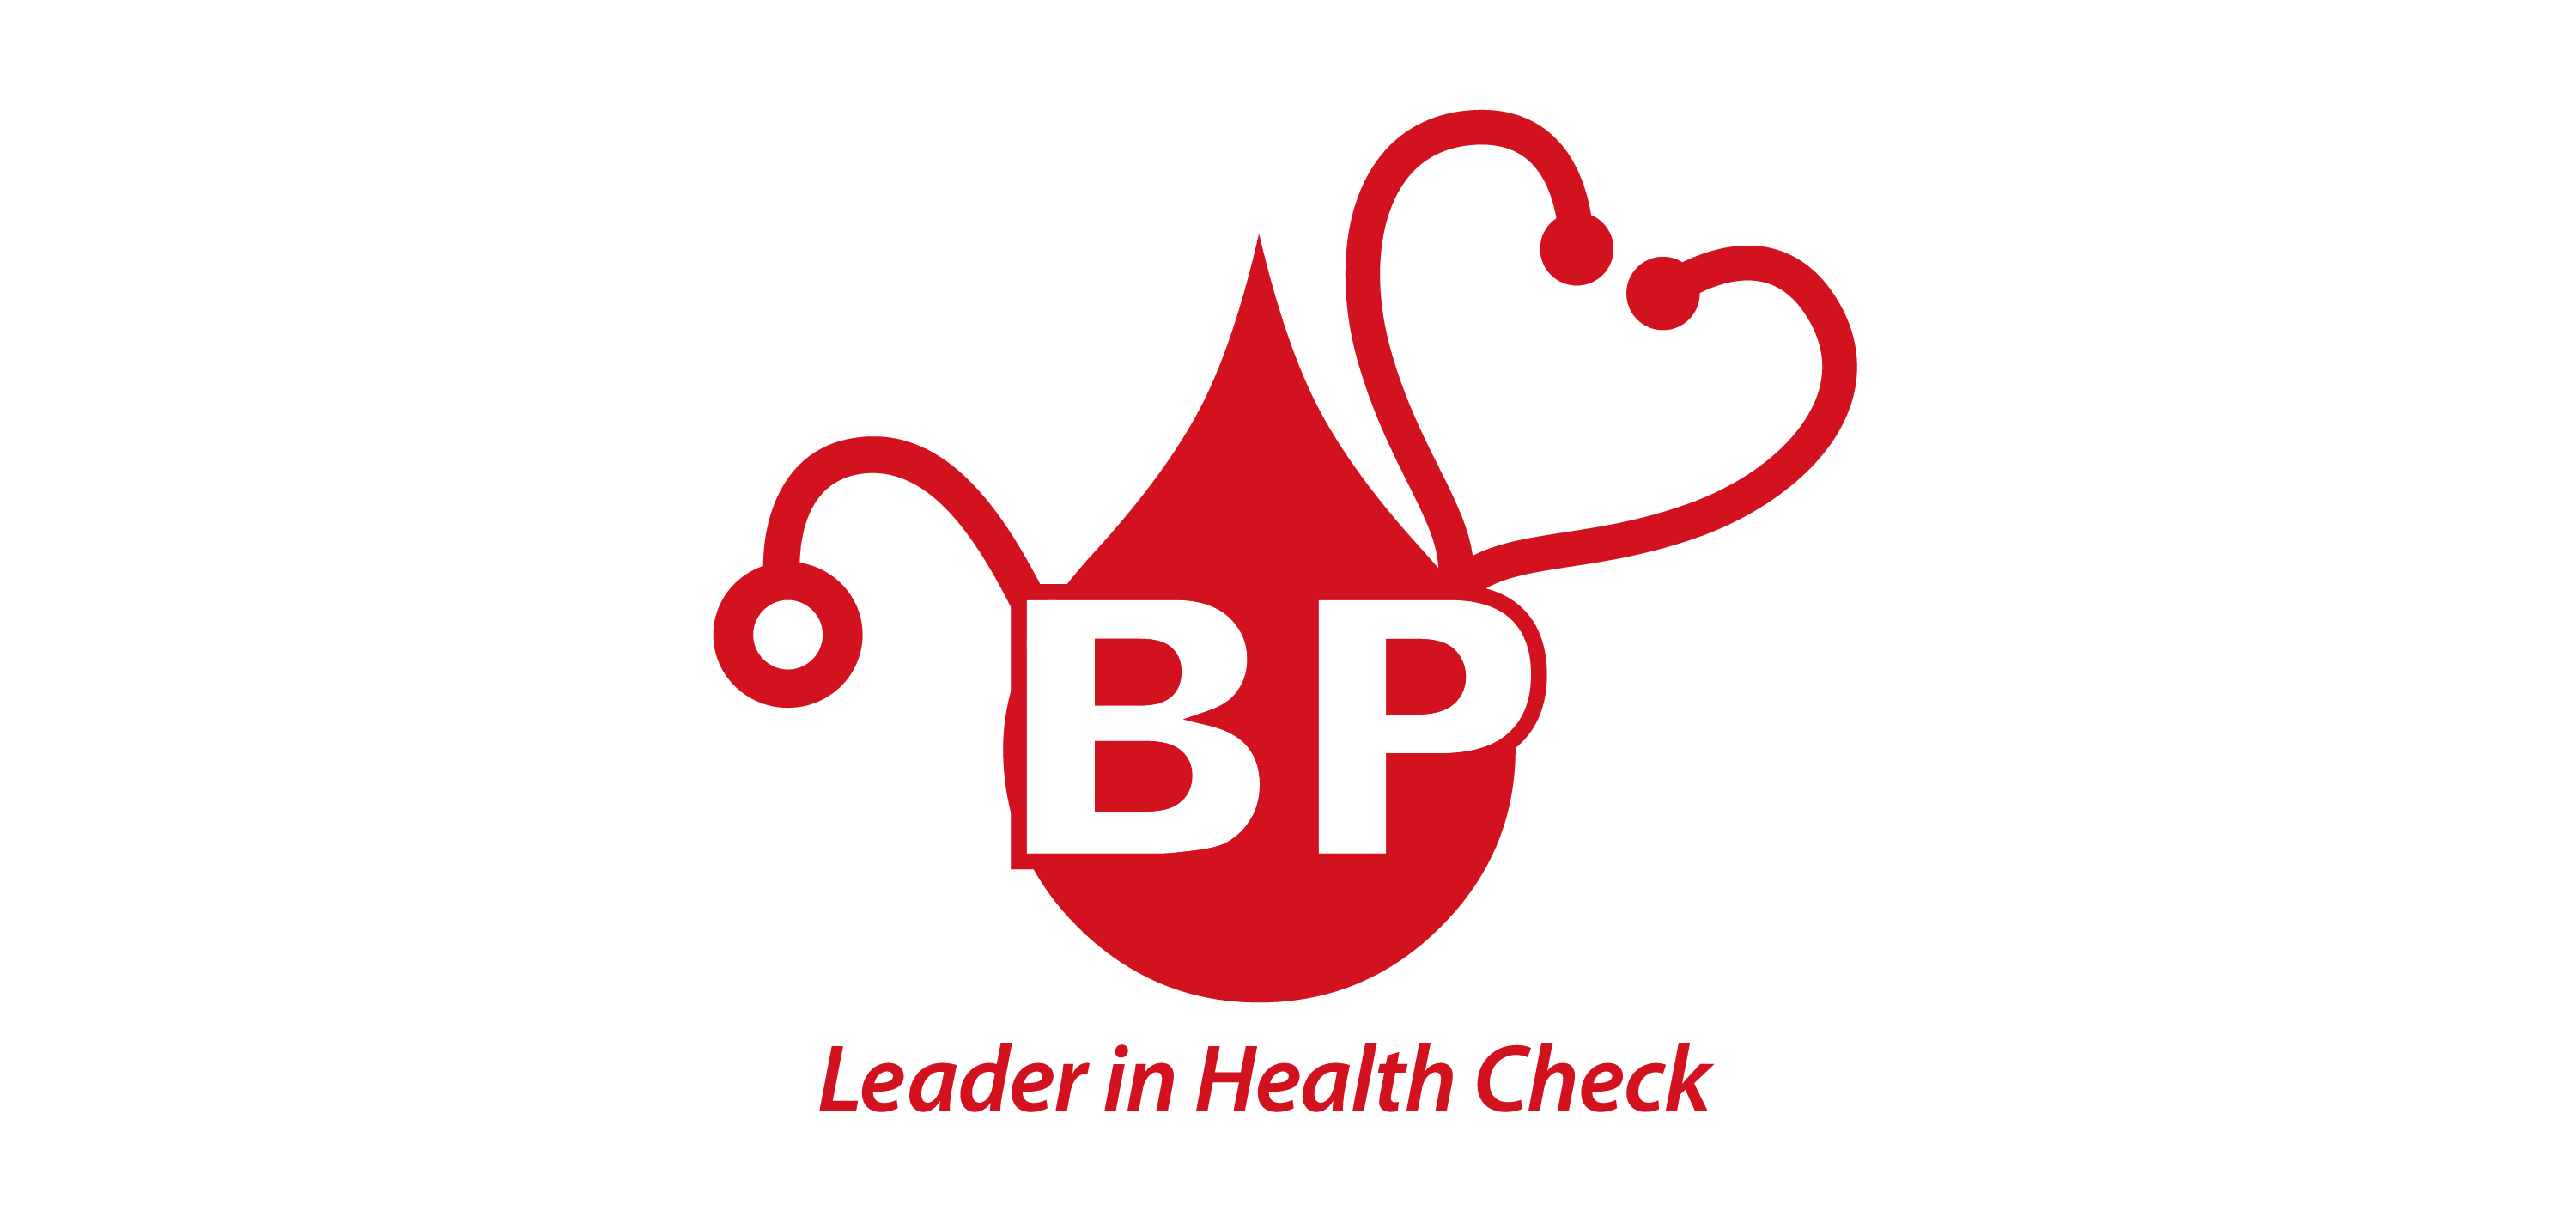 BP HEALTH Logo Vector Download